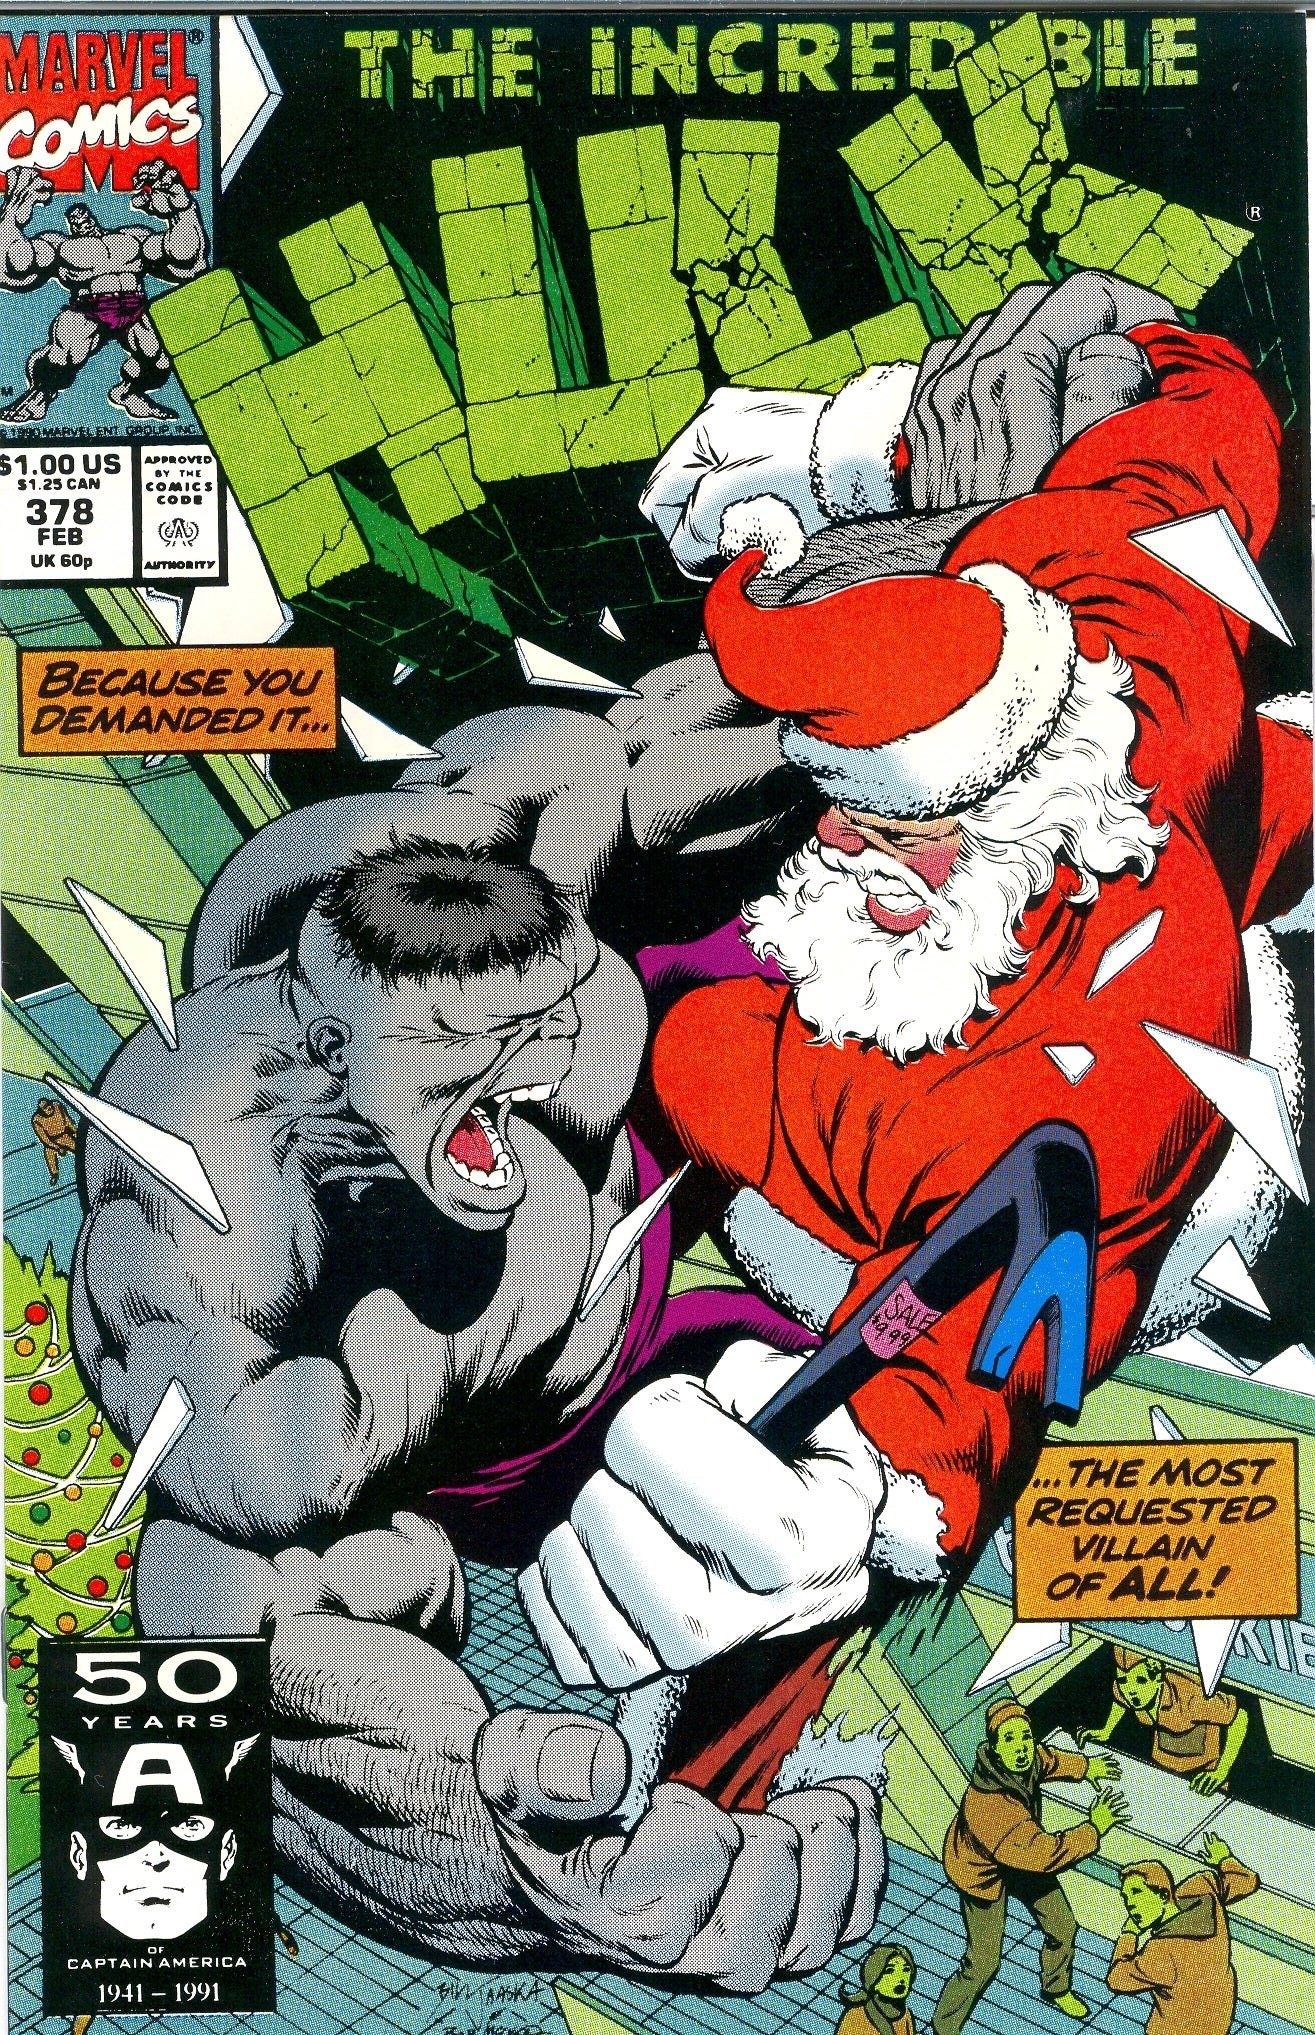 Anyone Comics is open on Christmas!!